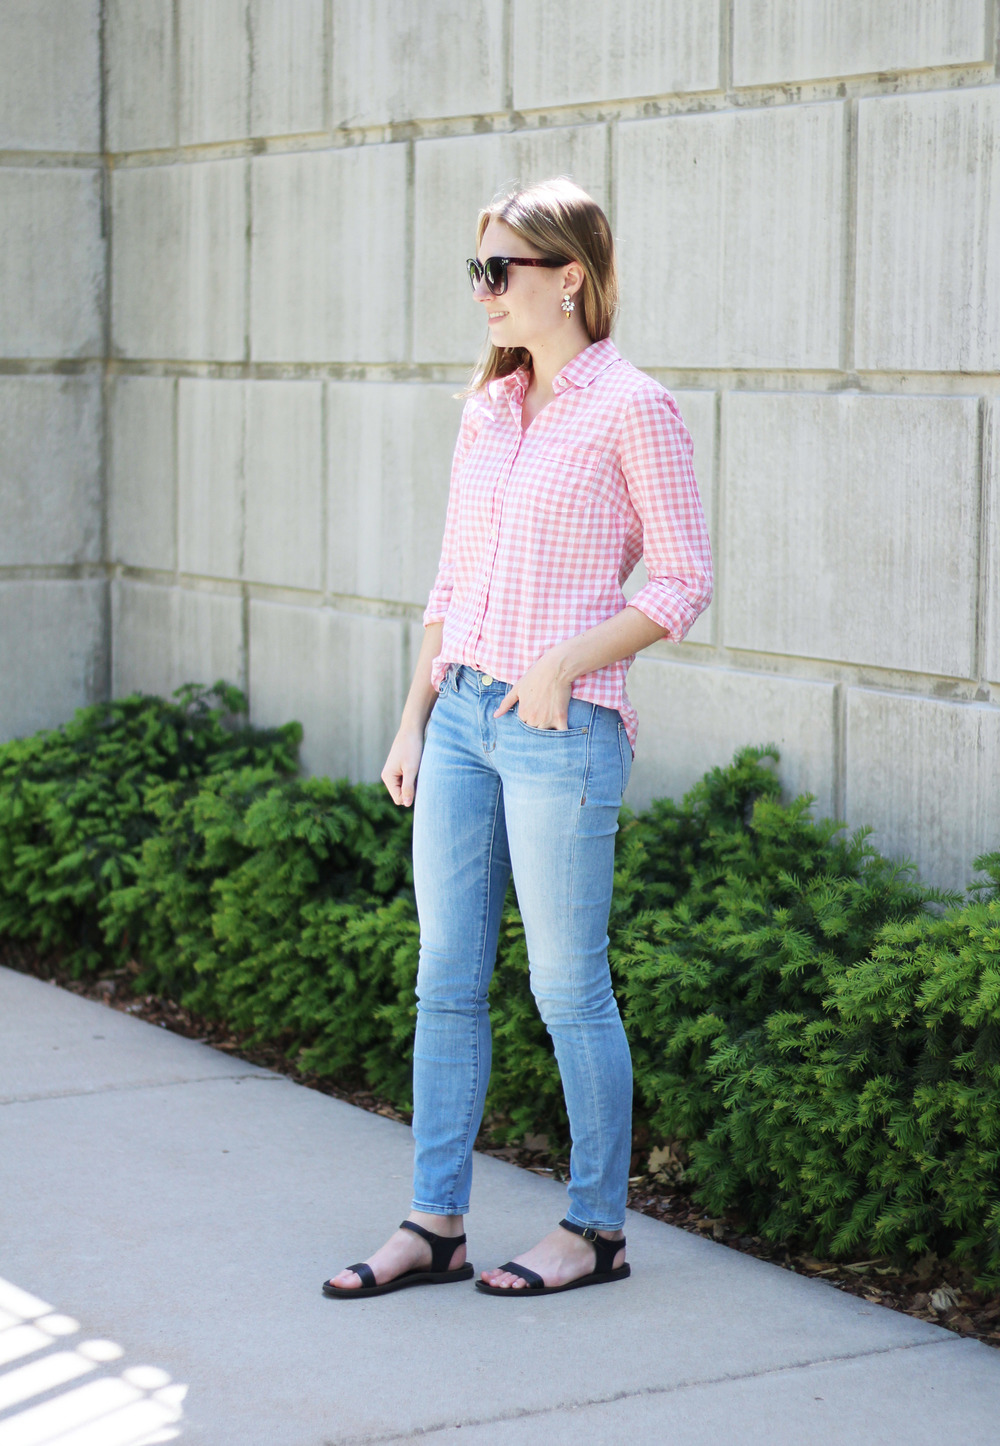 Spring outfit: Pink gingham shirt + light wash skinny jeans + black sandals — Cotton Cashmere Cat Hair